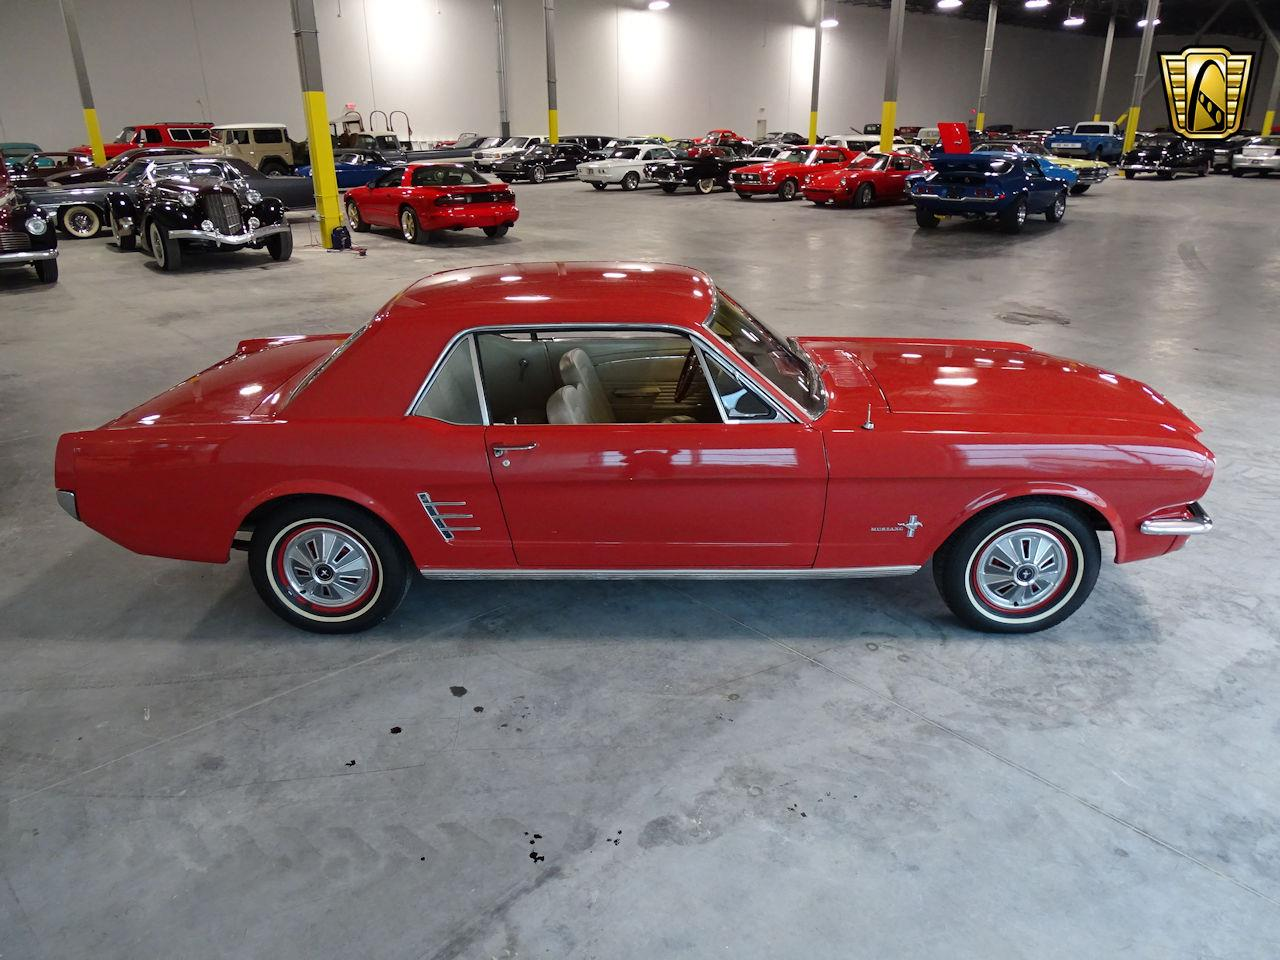 Large Picture of '66 Mustang - $11,595.00 Offered by Gateway Classic Cars - Houston - MO4X